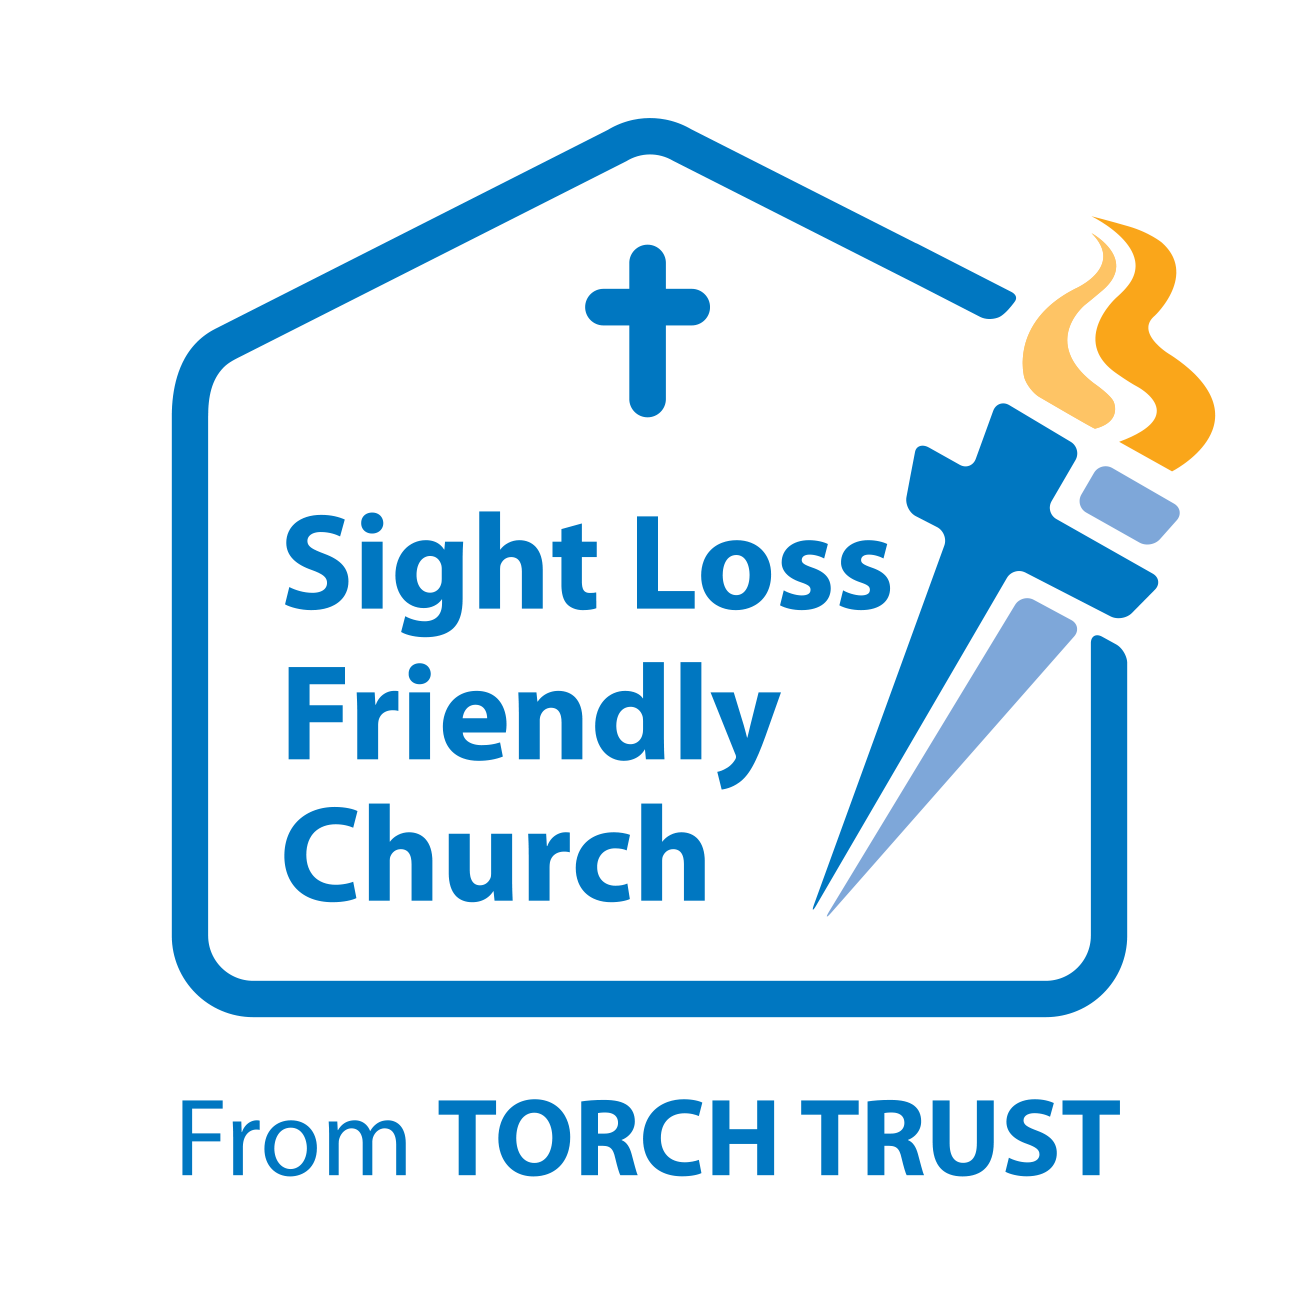 Sight Loss Friendly Church